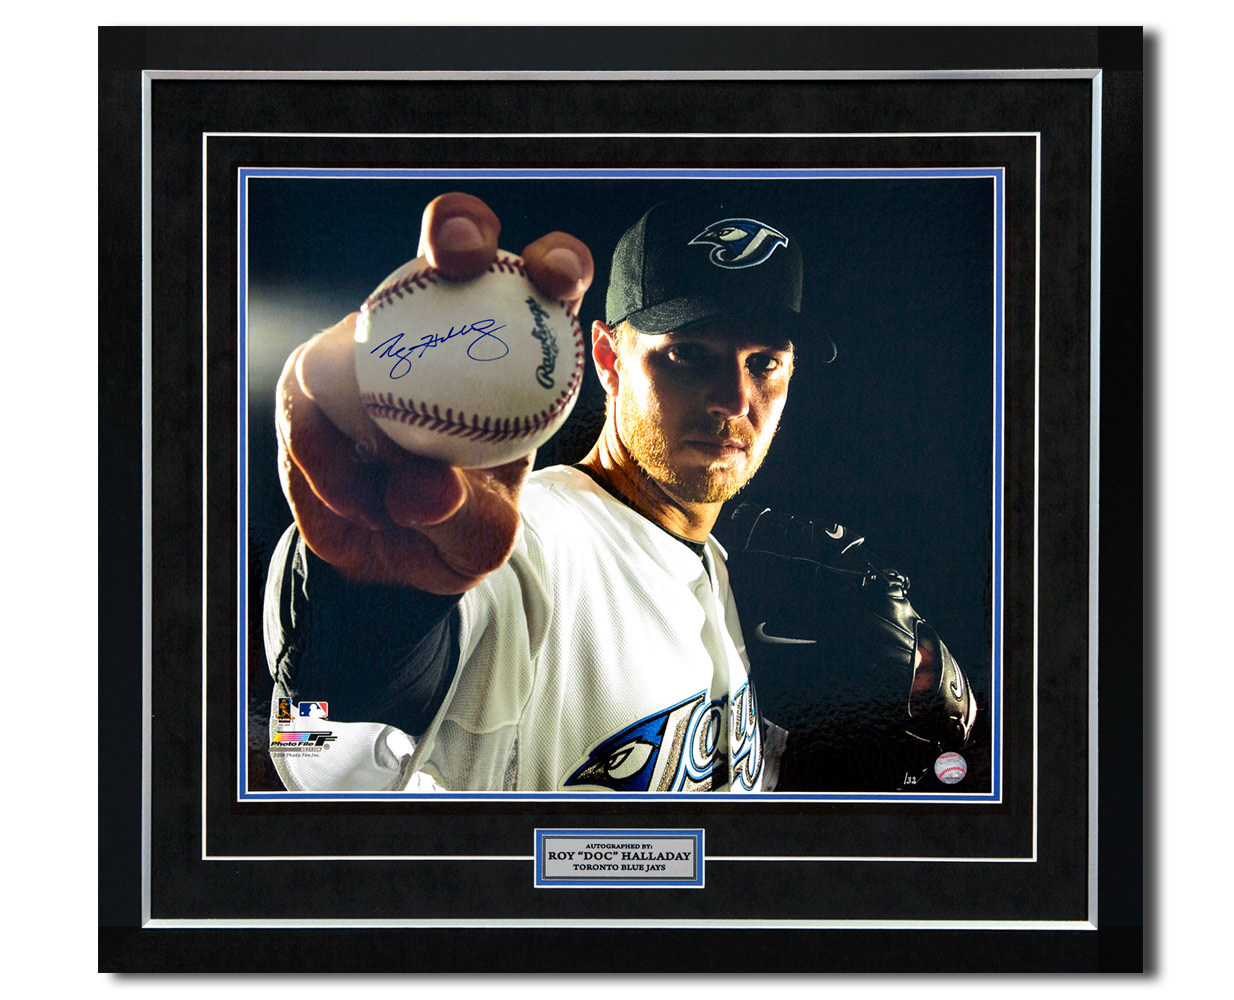 Primary image for Roy Halladay Toronto Blue Jays Autographed Baseball Close-Up 30x33 Frame #/32